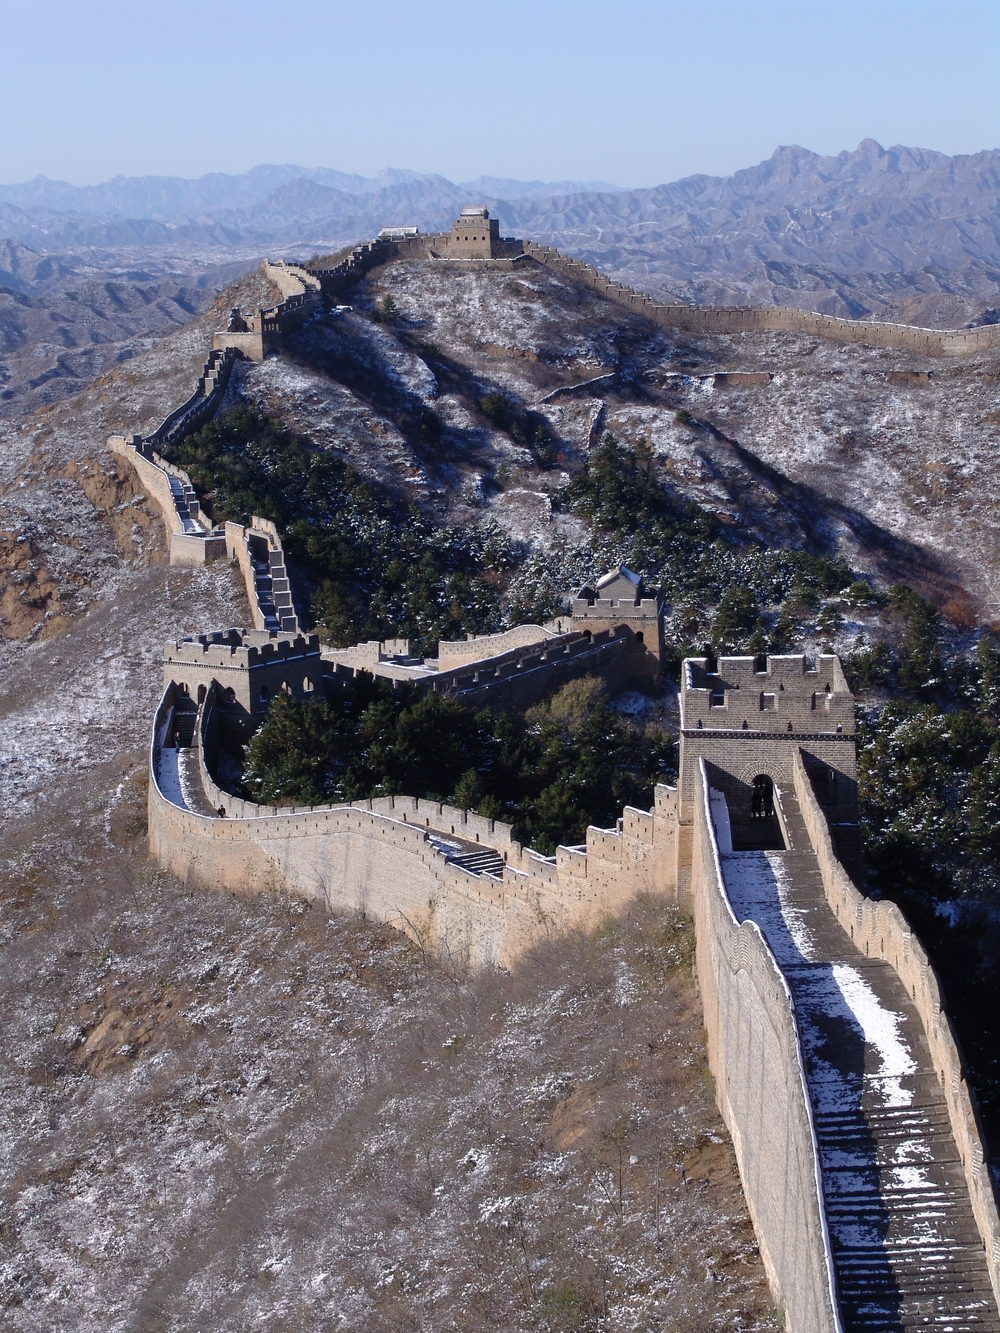 The Jinshanling section of the Great Wall